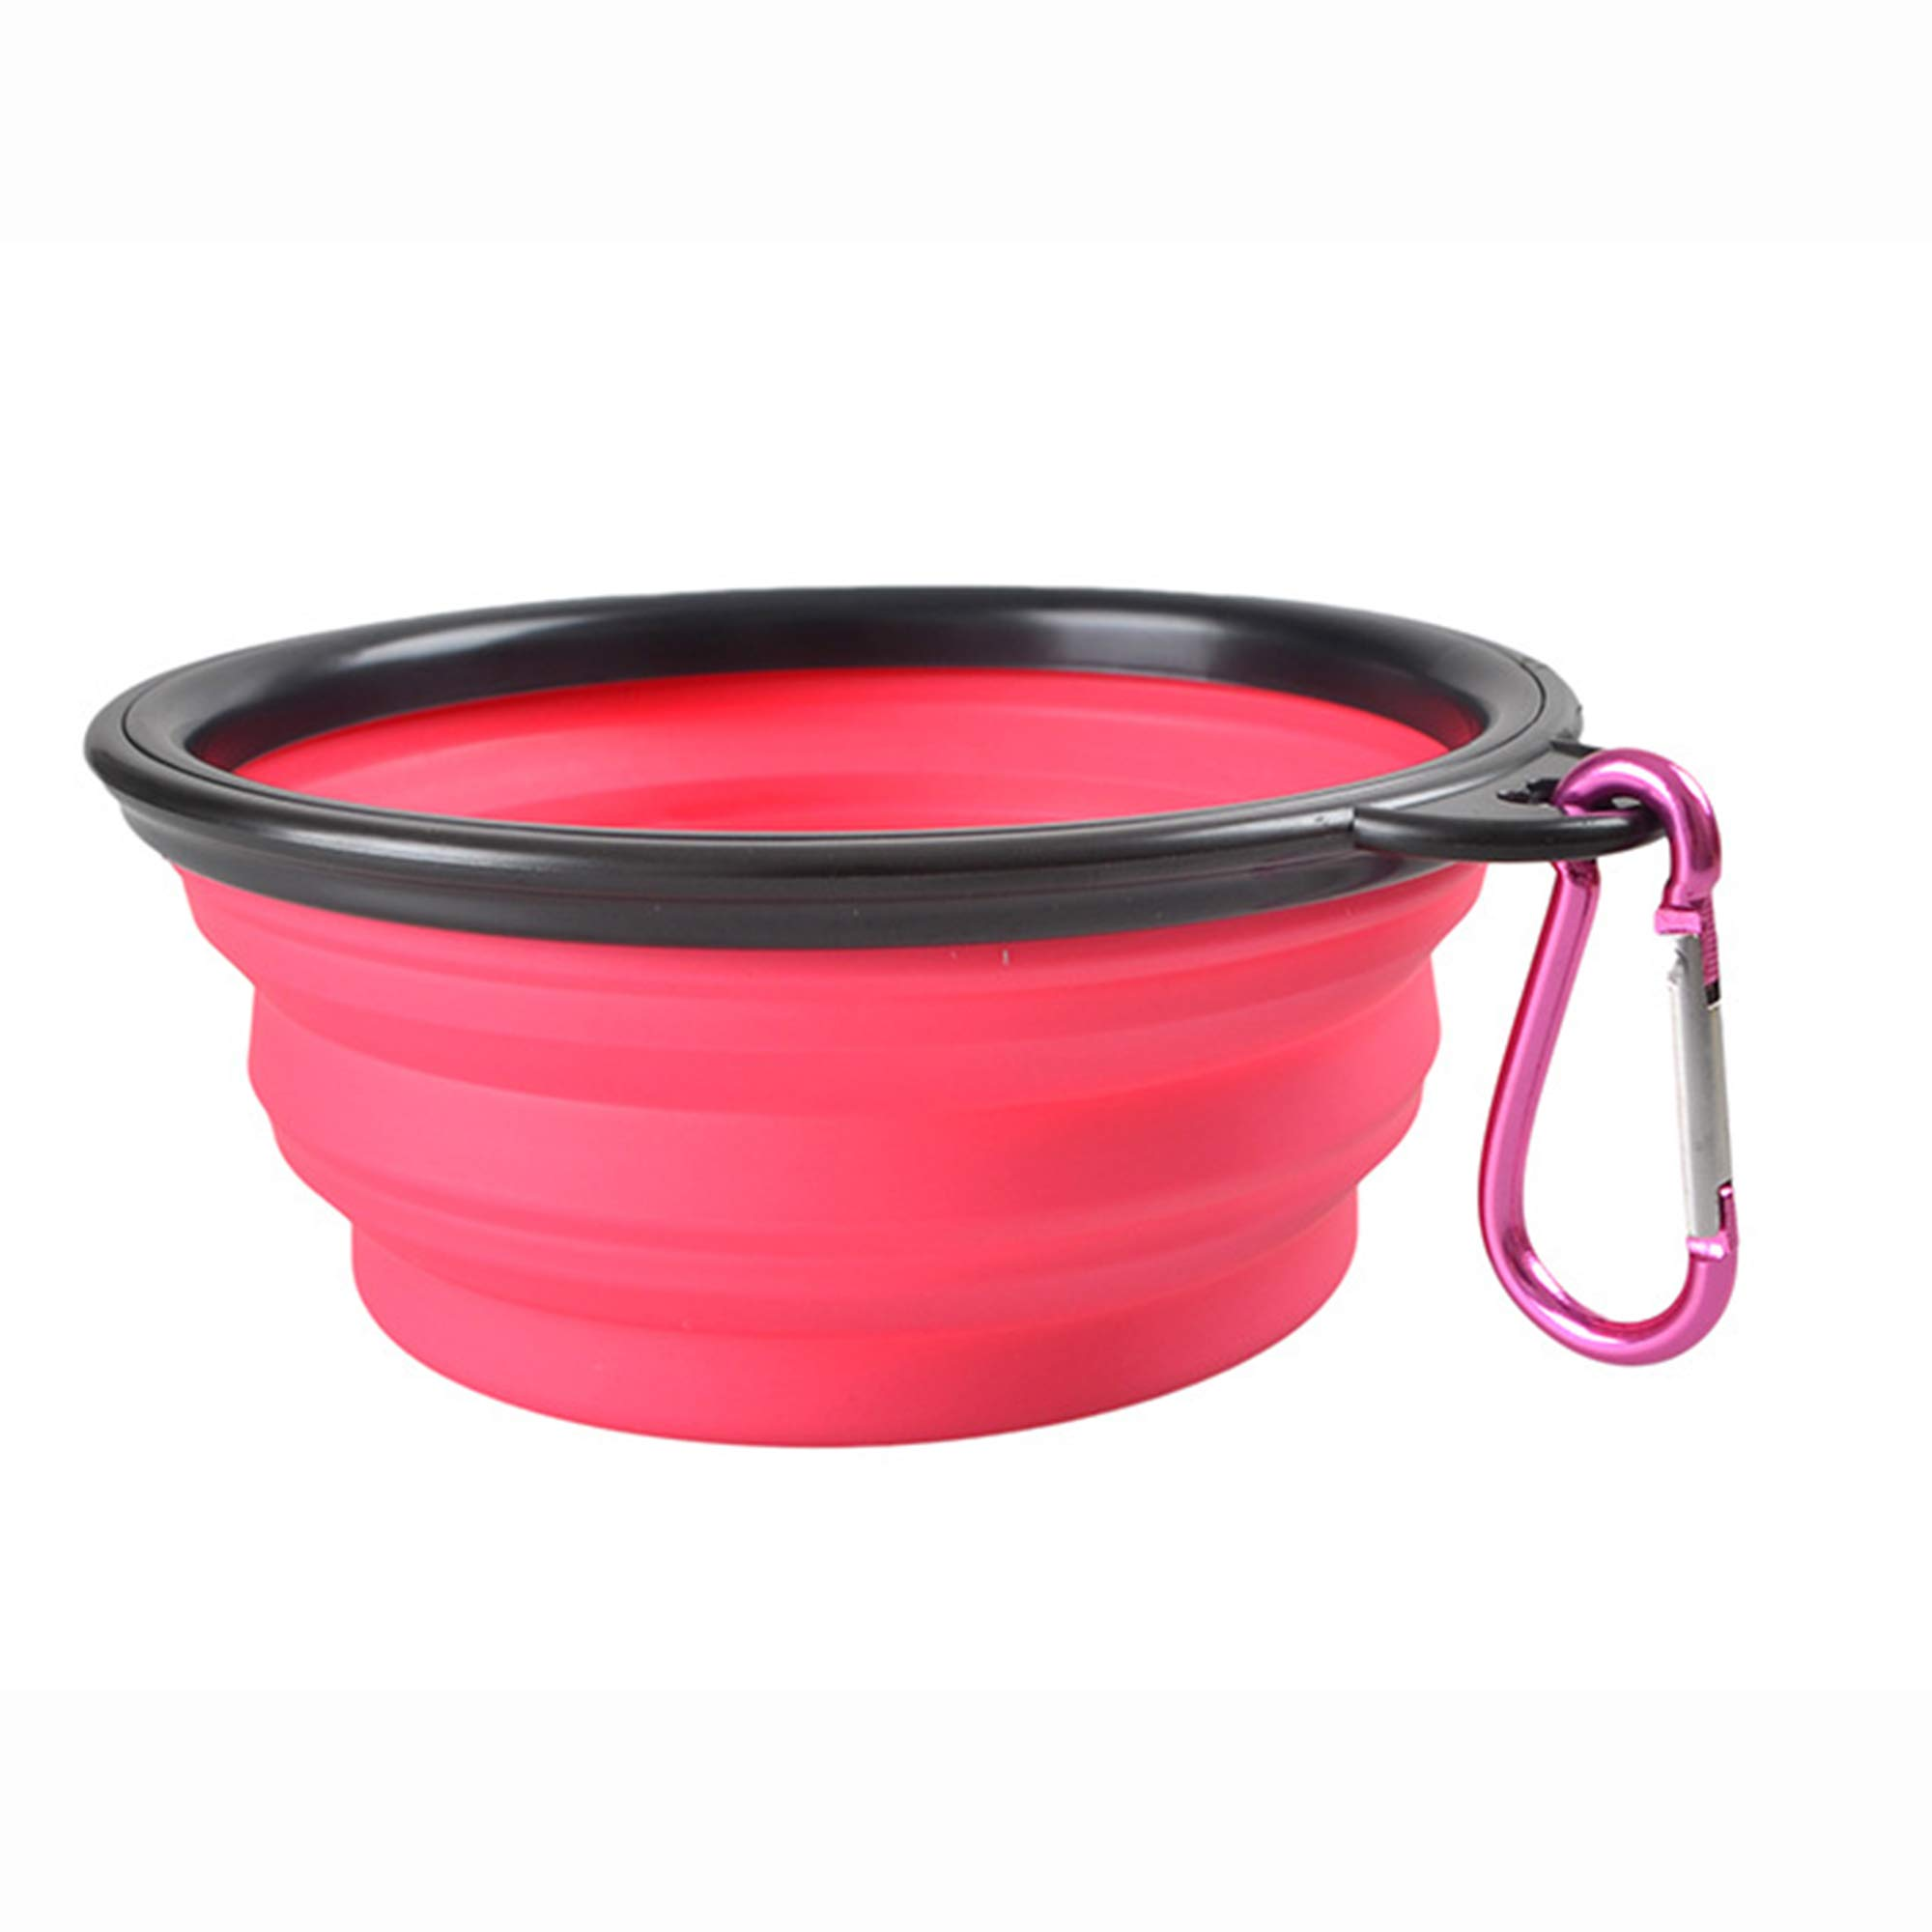 NOMSOCR Collapsible Portable Dog Bowl, BPA Free Foldable Expandable Cup Dish Pet Raised Dog/Cat Food Water Feeding Portable Raised Tralve Camping Bowl (Pink, Diameter:5inch Height:3.5inch)